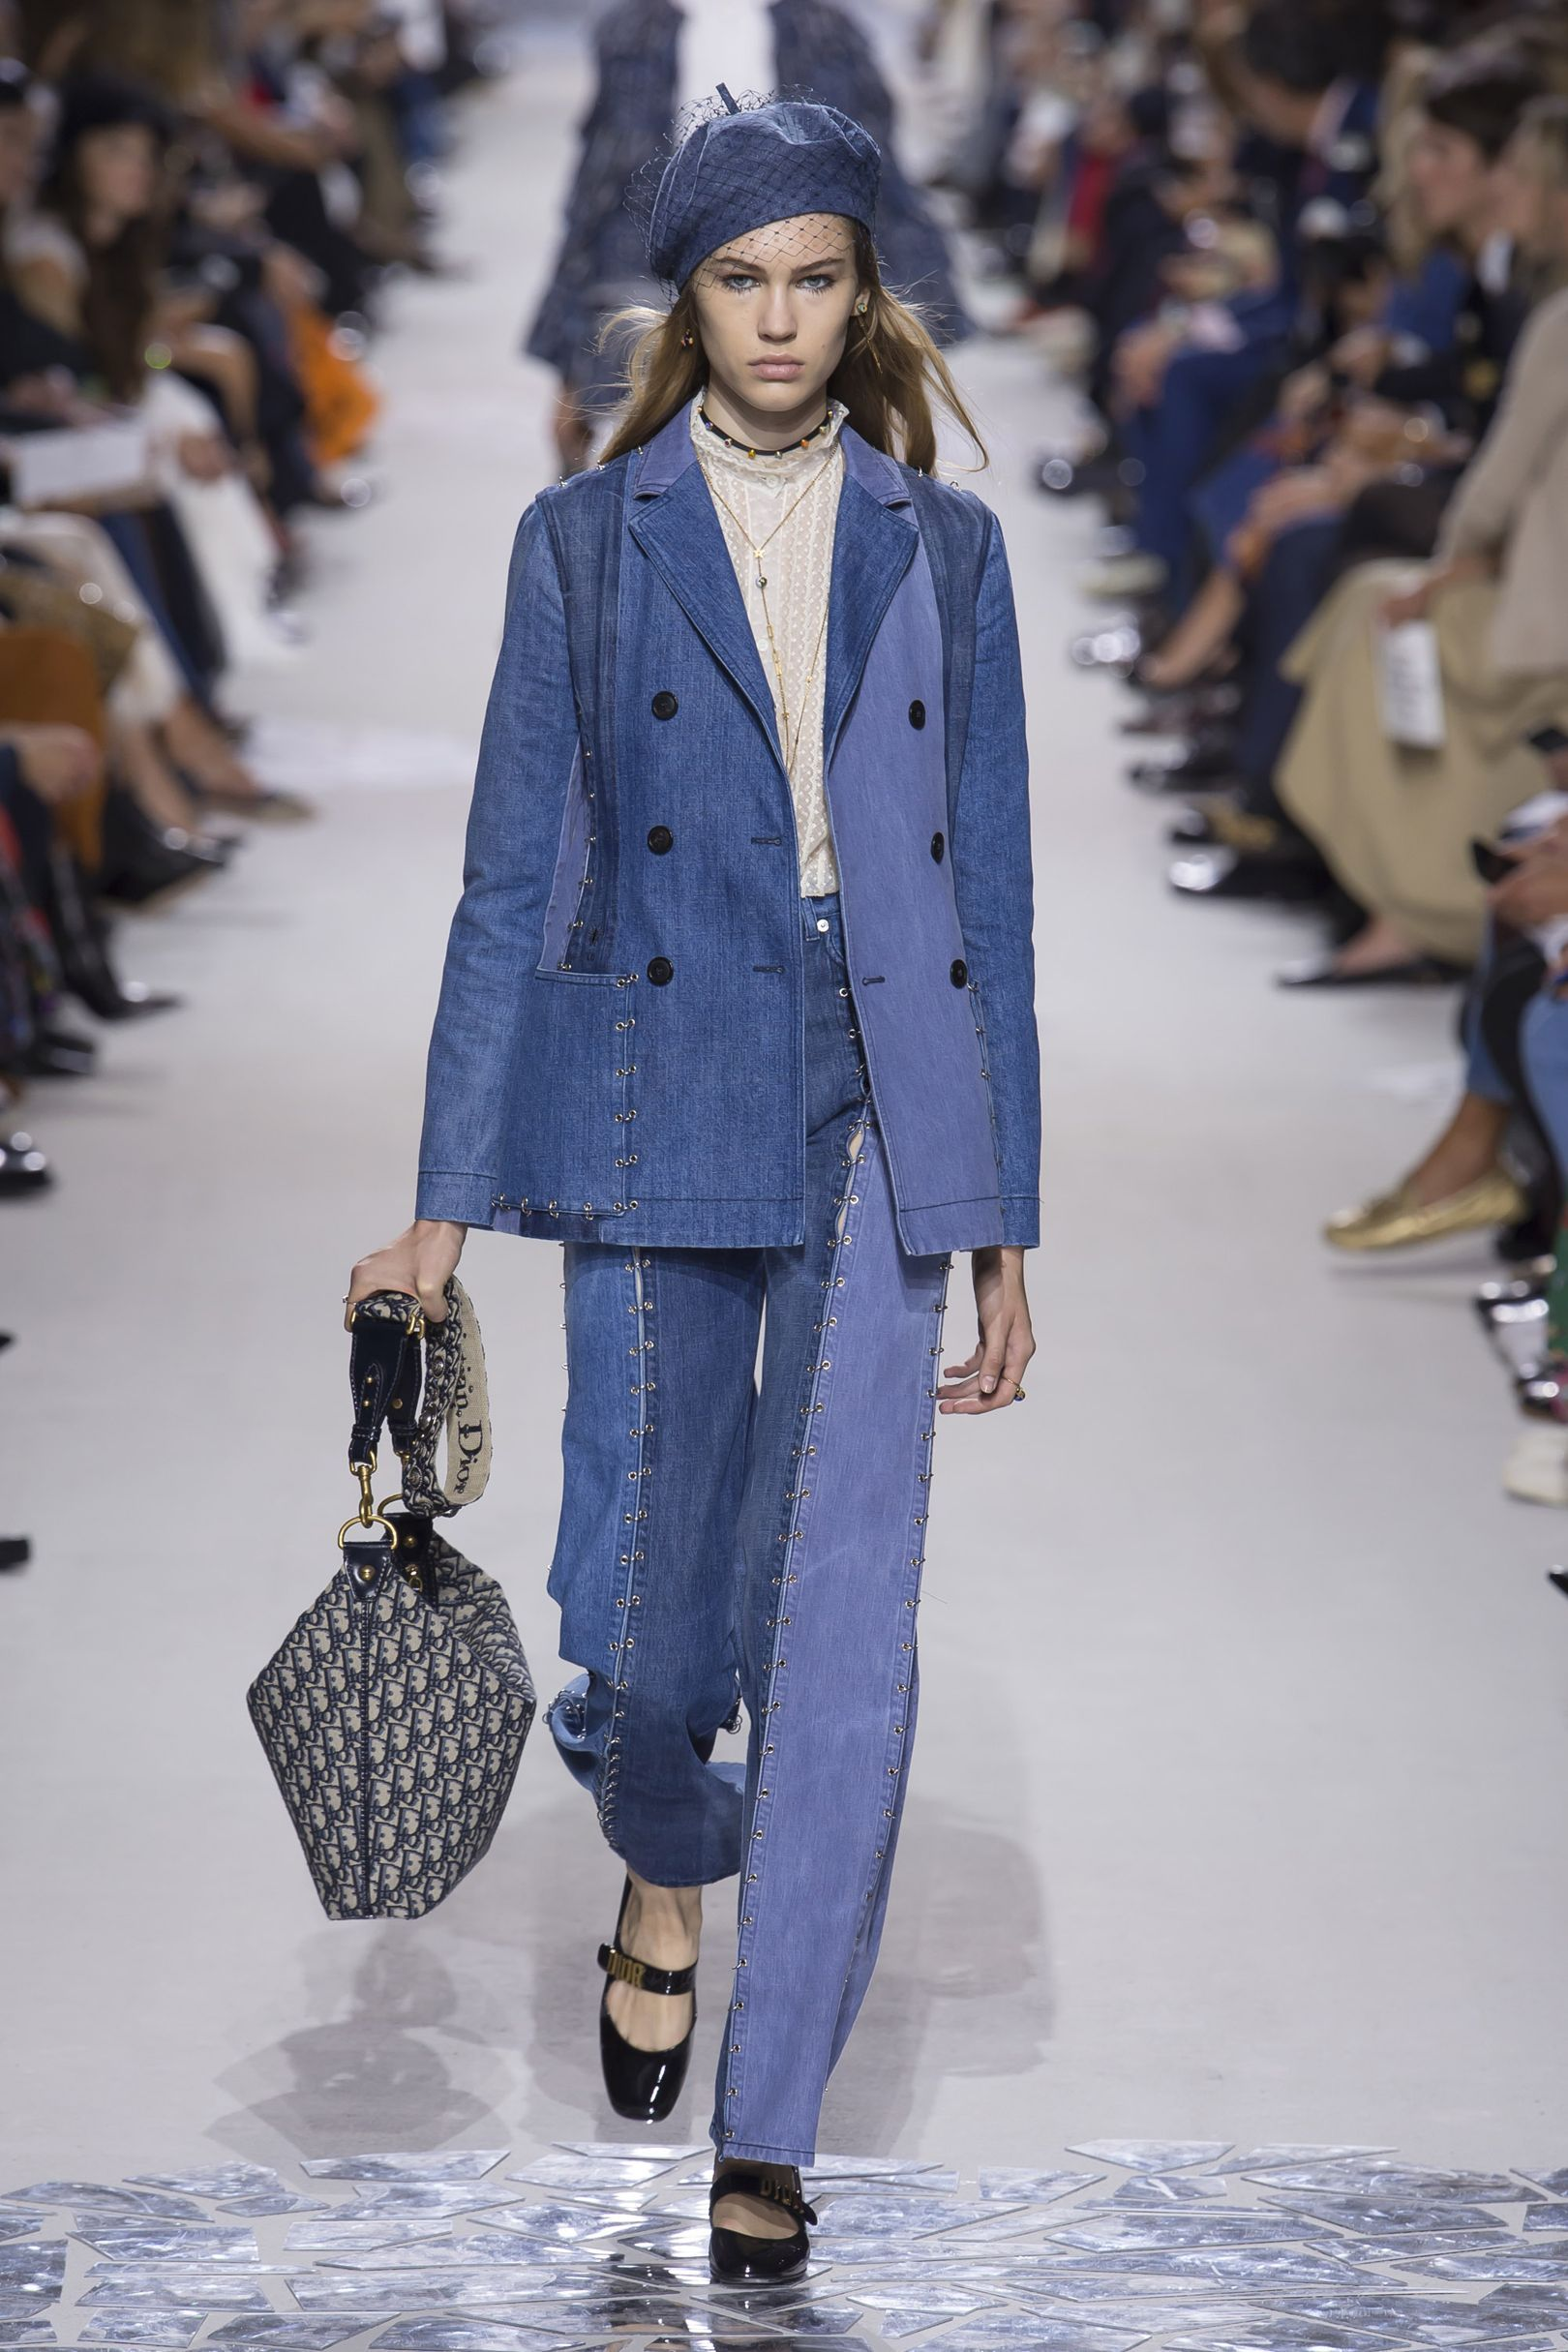 Christian Dior Spring/Summer 2018 Ready-To-Wear Collection